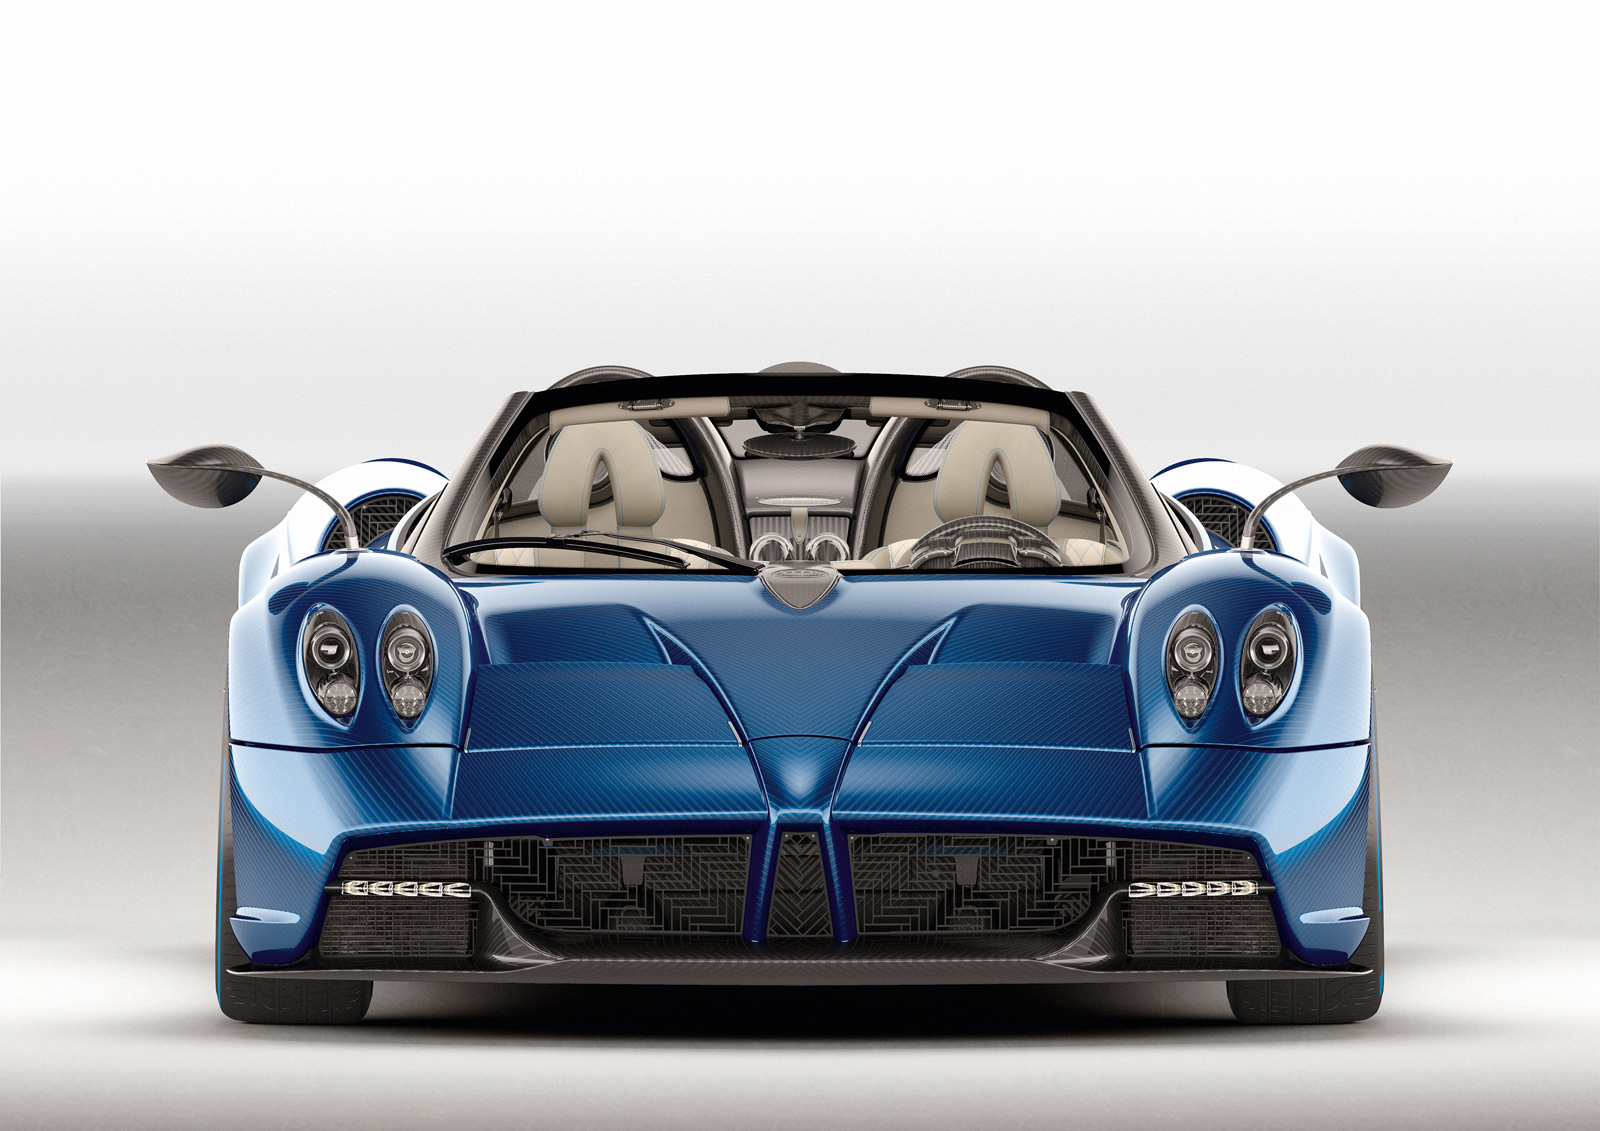 DS pagani huayra roadster : Pagani Huayra Roadster is Beautifully Complicated » AutoGuide.com News